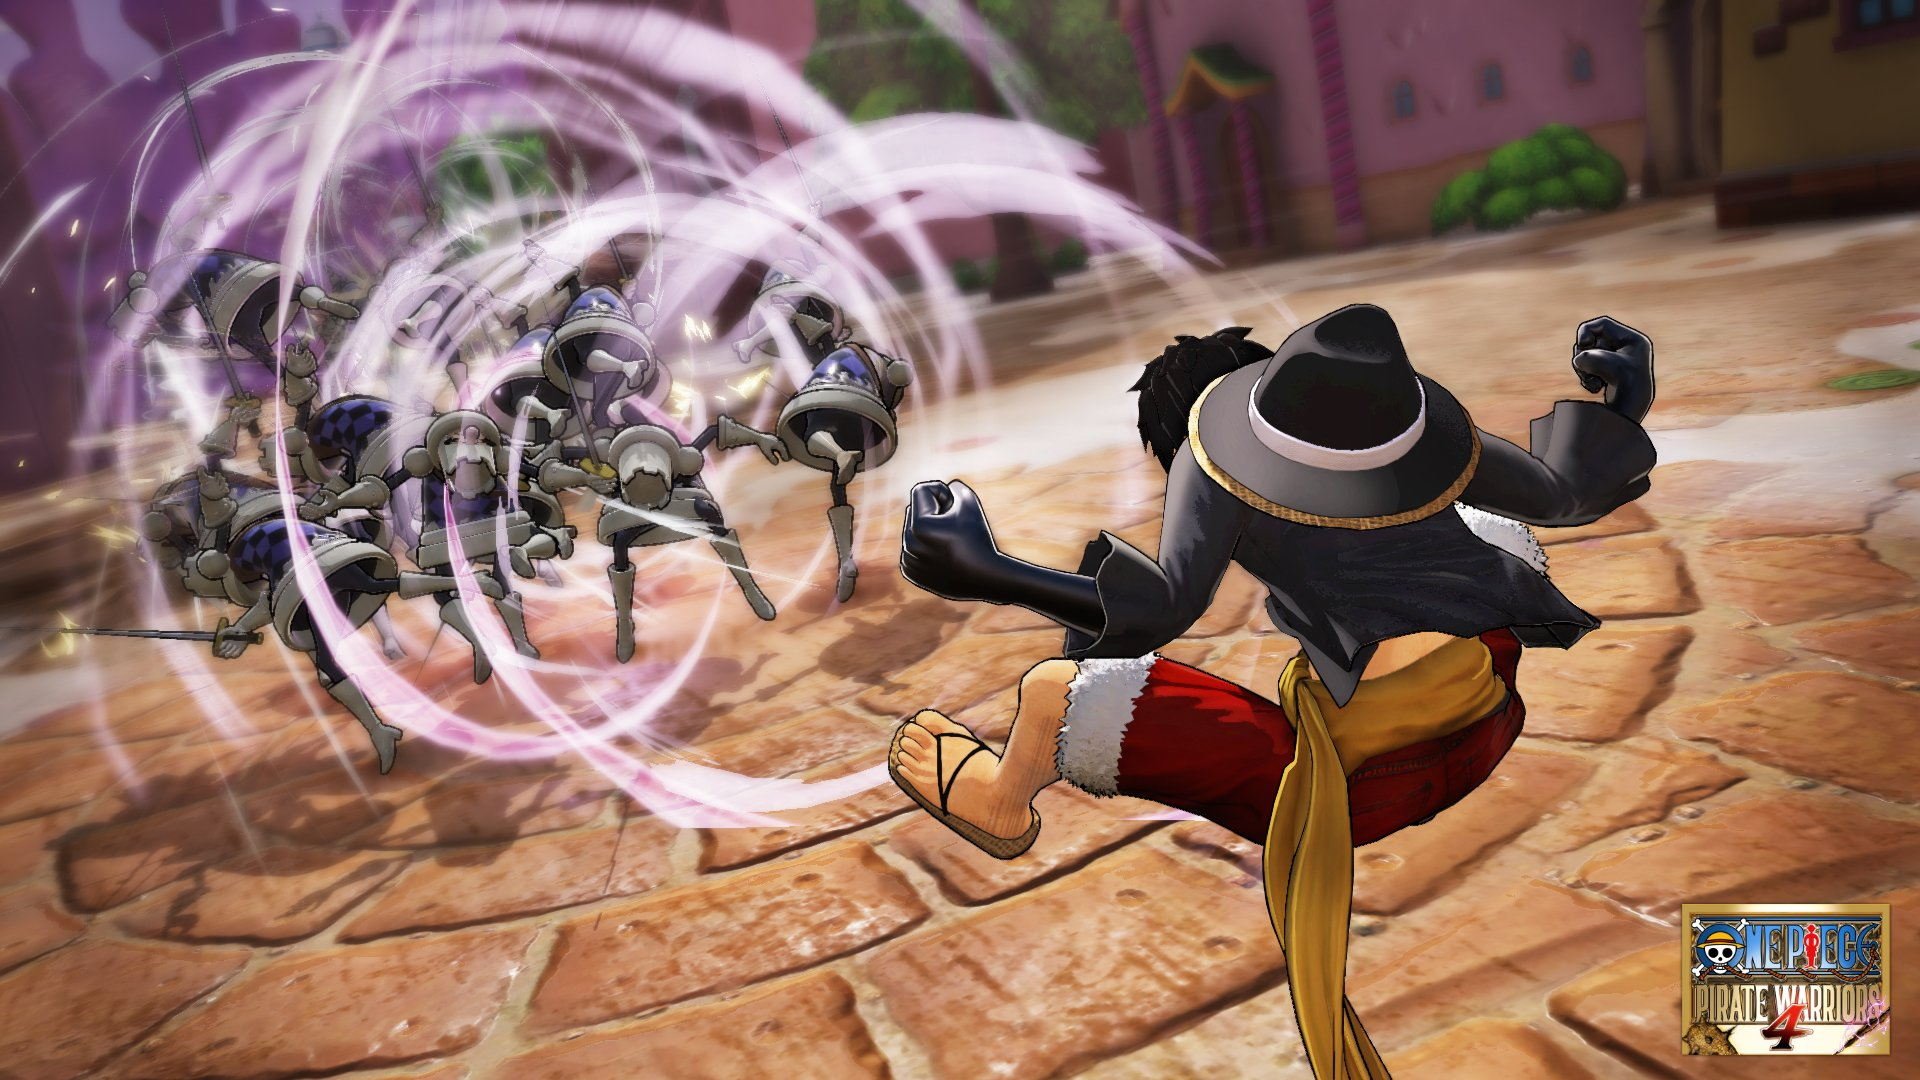 One Piece Pirate Warriors 4 Tgs 2019 Trailer Released Showcasing Wano Country Arc The Mako Reactor